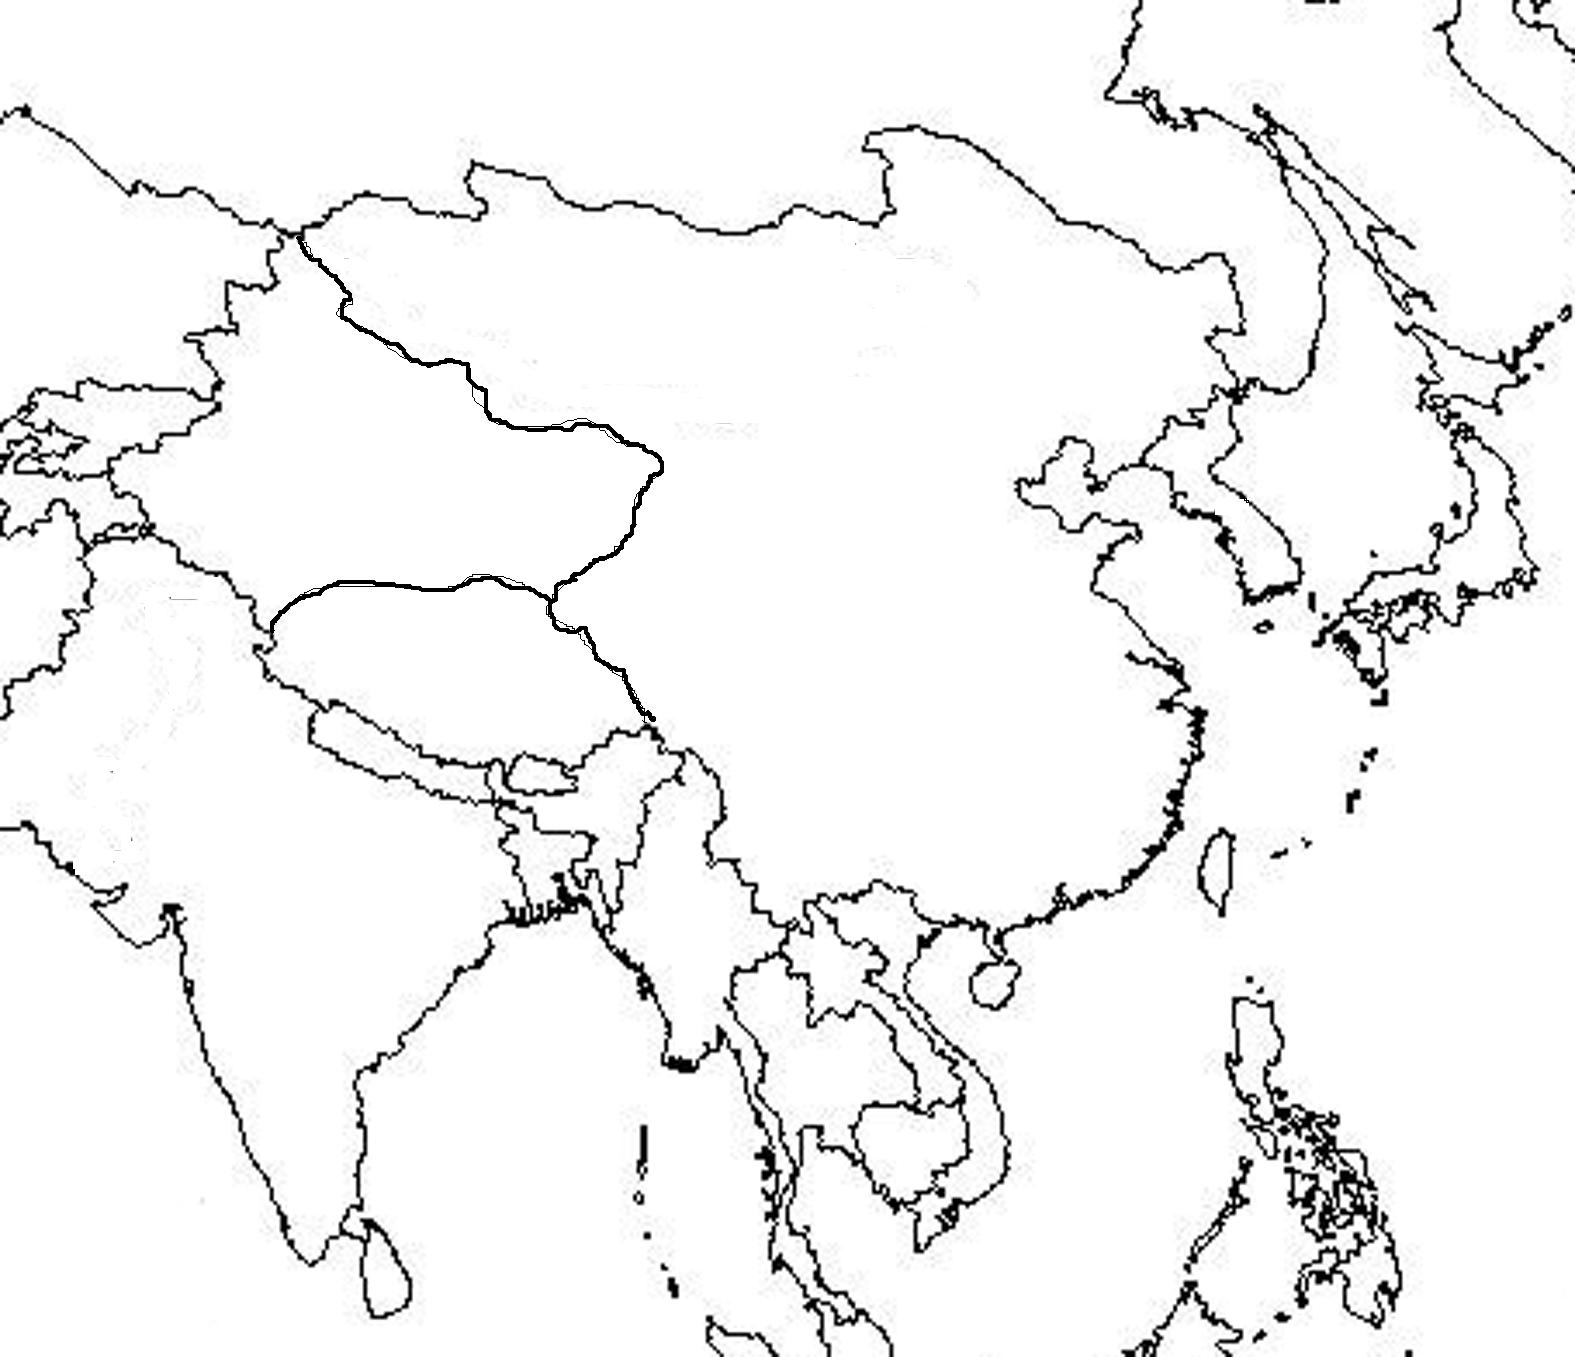 Image Asiaoutlineblankmapjpg Alternative History FANDOM - Blank map of asia